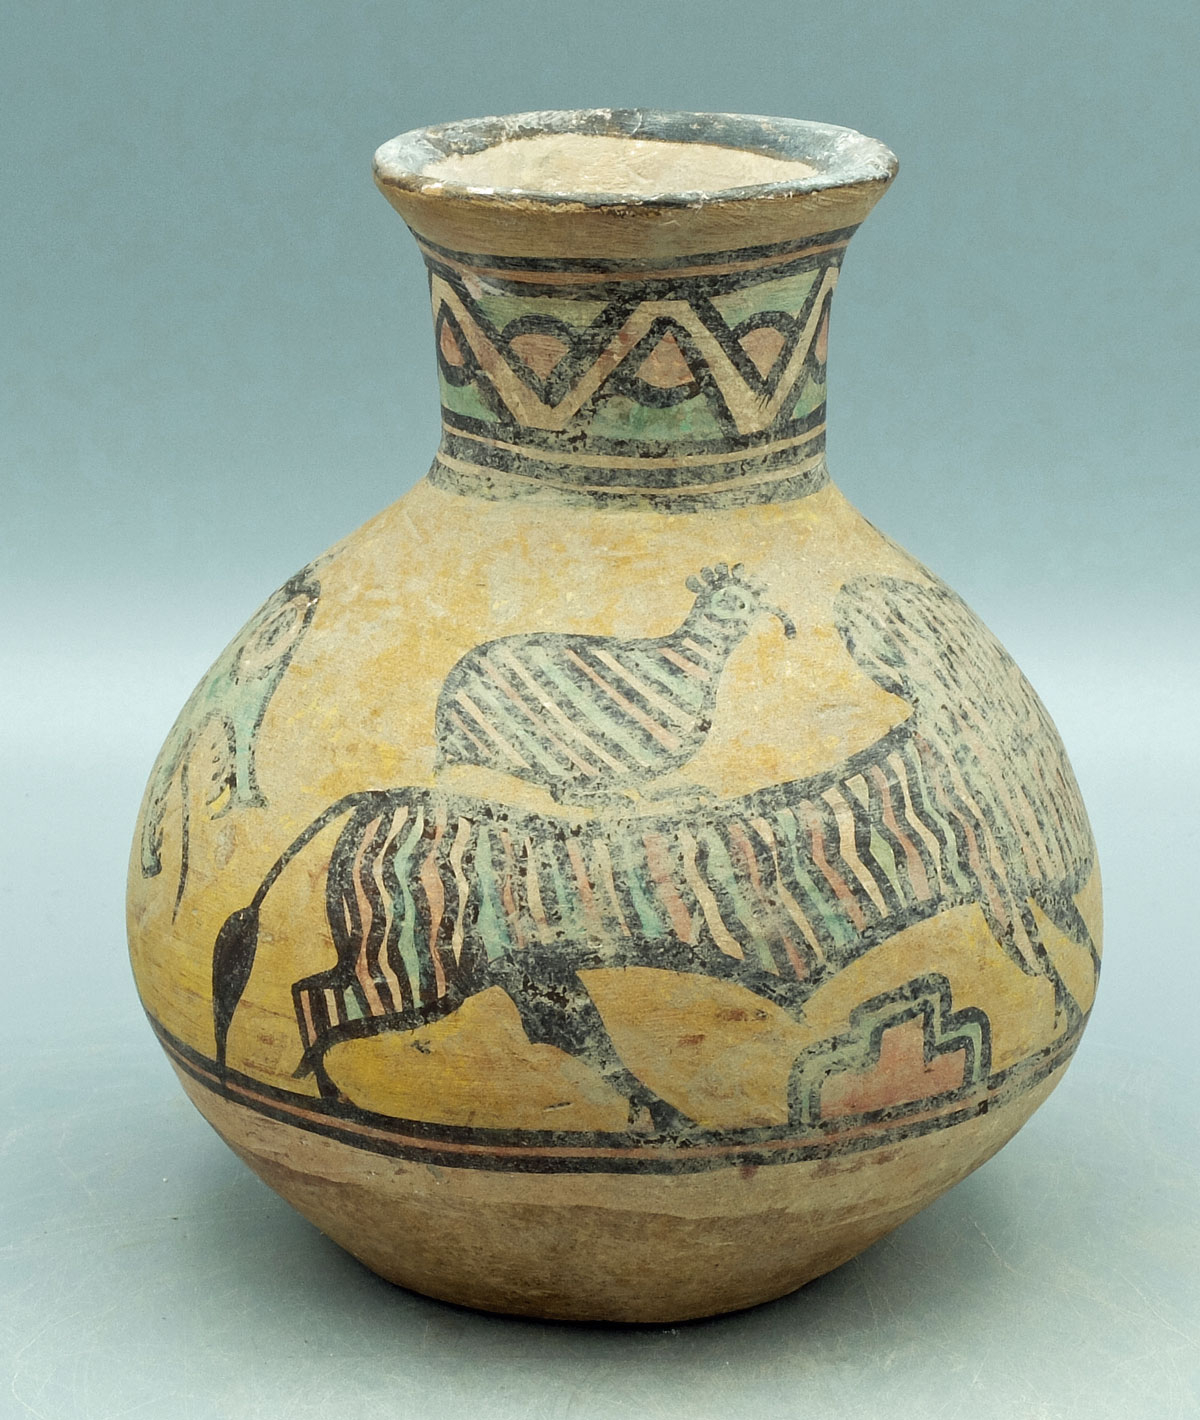 Harappan Vessel - Indus Valley, ca. 2500 - 1800 BC - Image 2 of 4